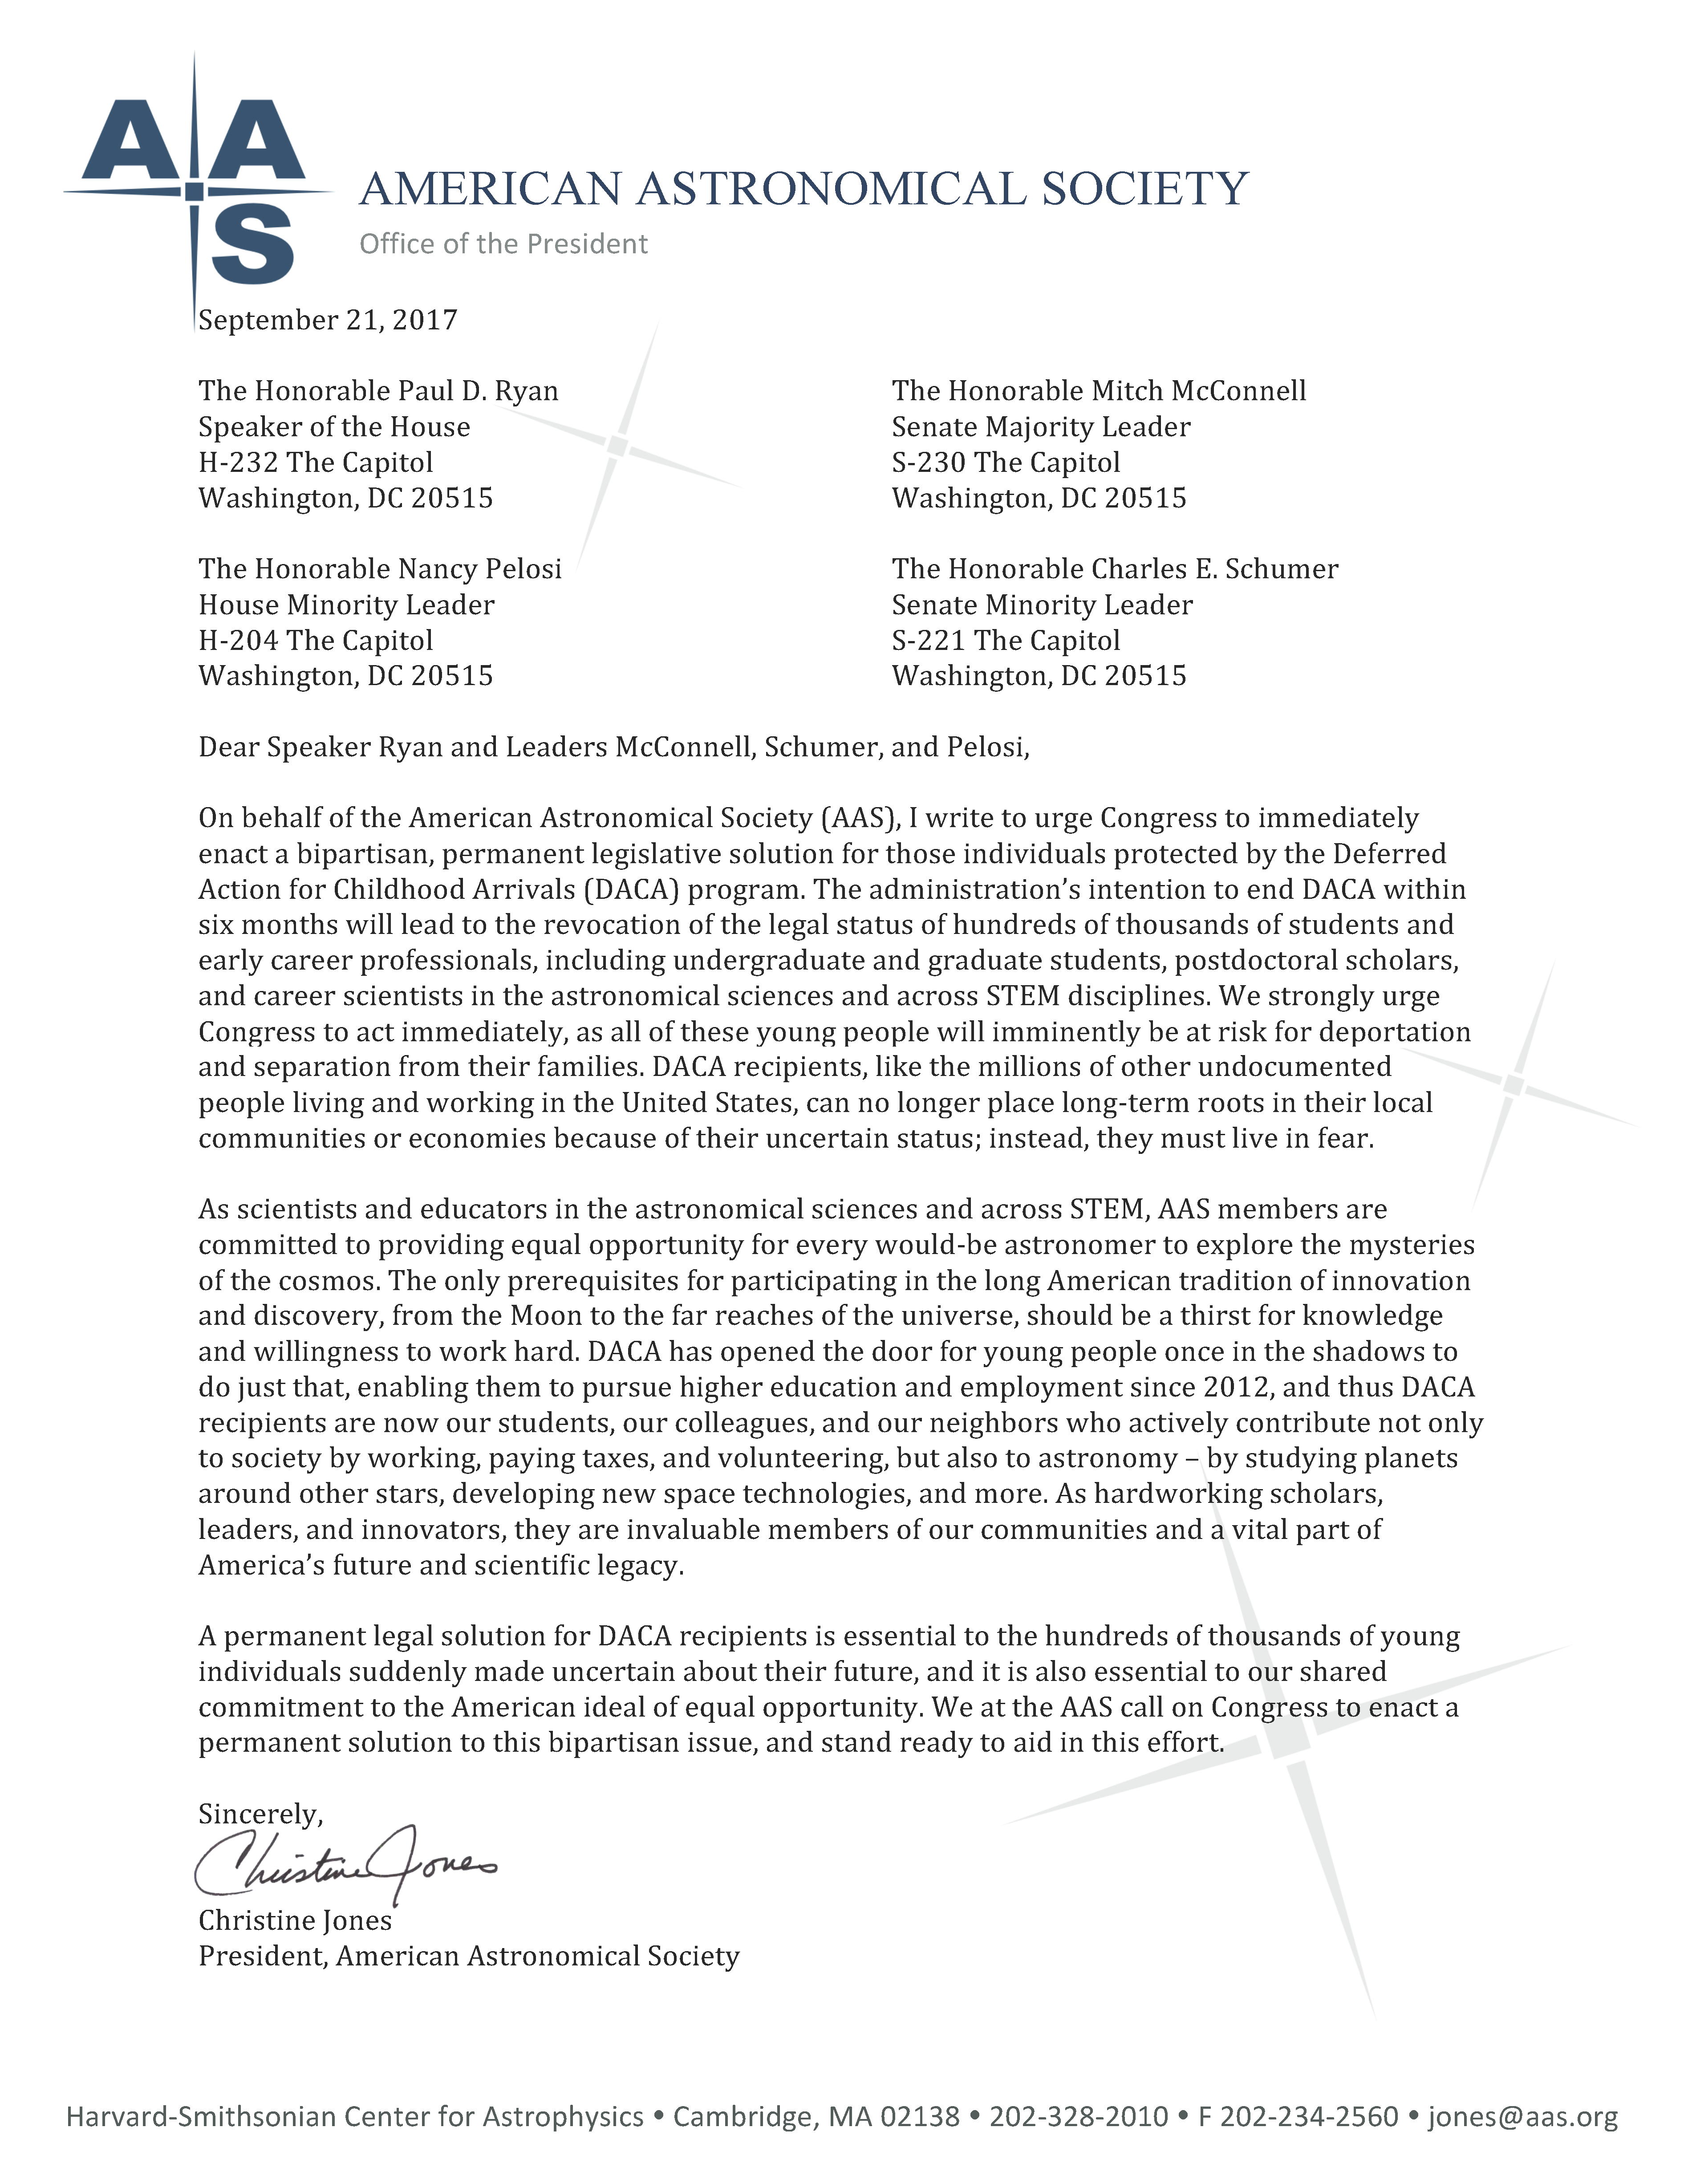 A Letter To Congressional Leadership From Aas President On Daca